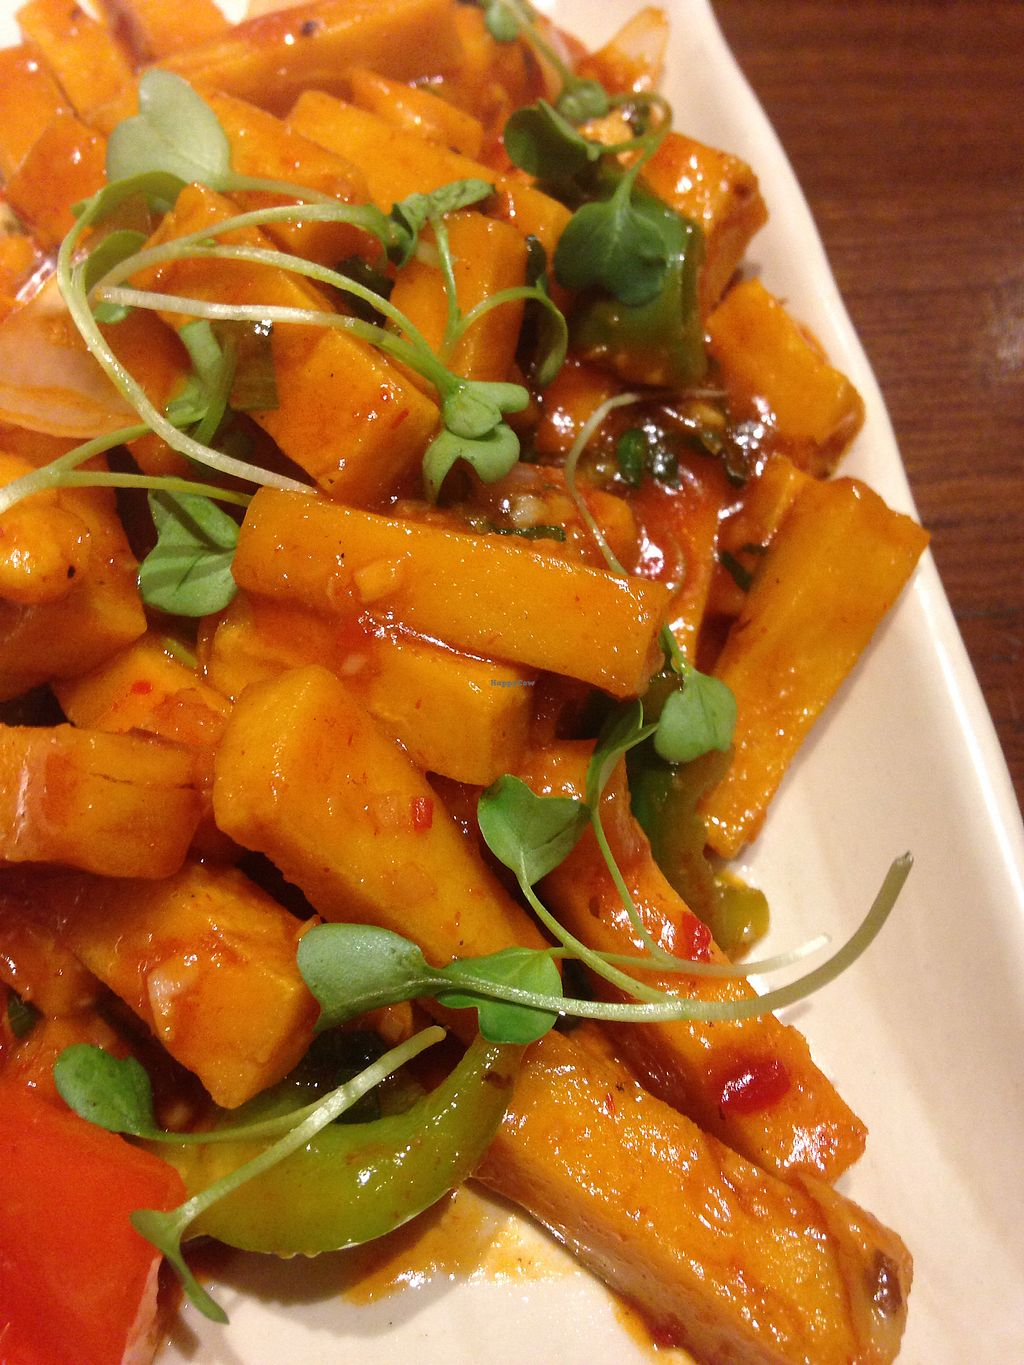 """Photo of Burma Burma Restaurant & Tea Room  by <a href=""""/members/profile/SophieCarolyn"""">SophieCarolyn</a> <br/>Tohu  Kyaw  - chilly tangy chickpea tohu <br/> February 28, 2018  - <a href='/contact/abuse/image/100283/364910'>Report</a>"""